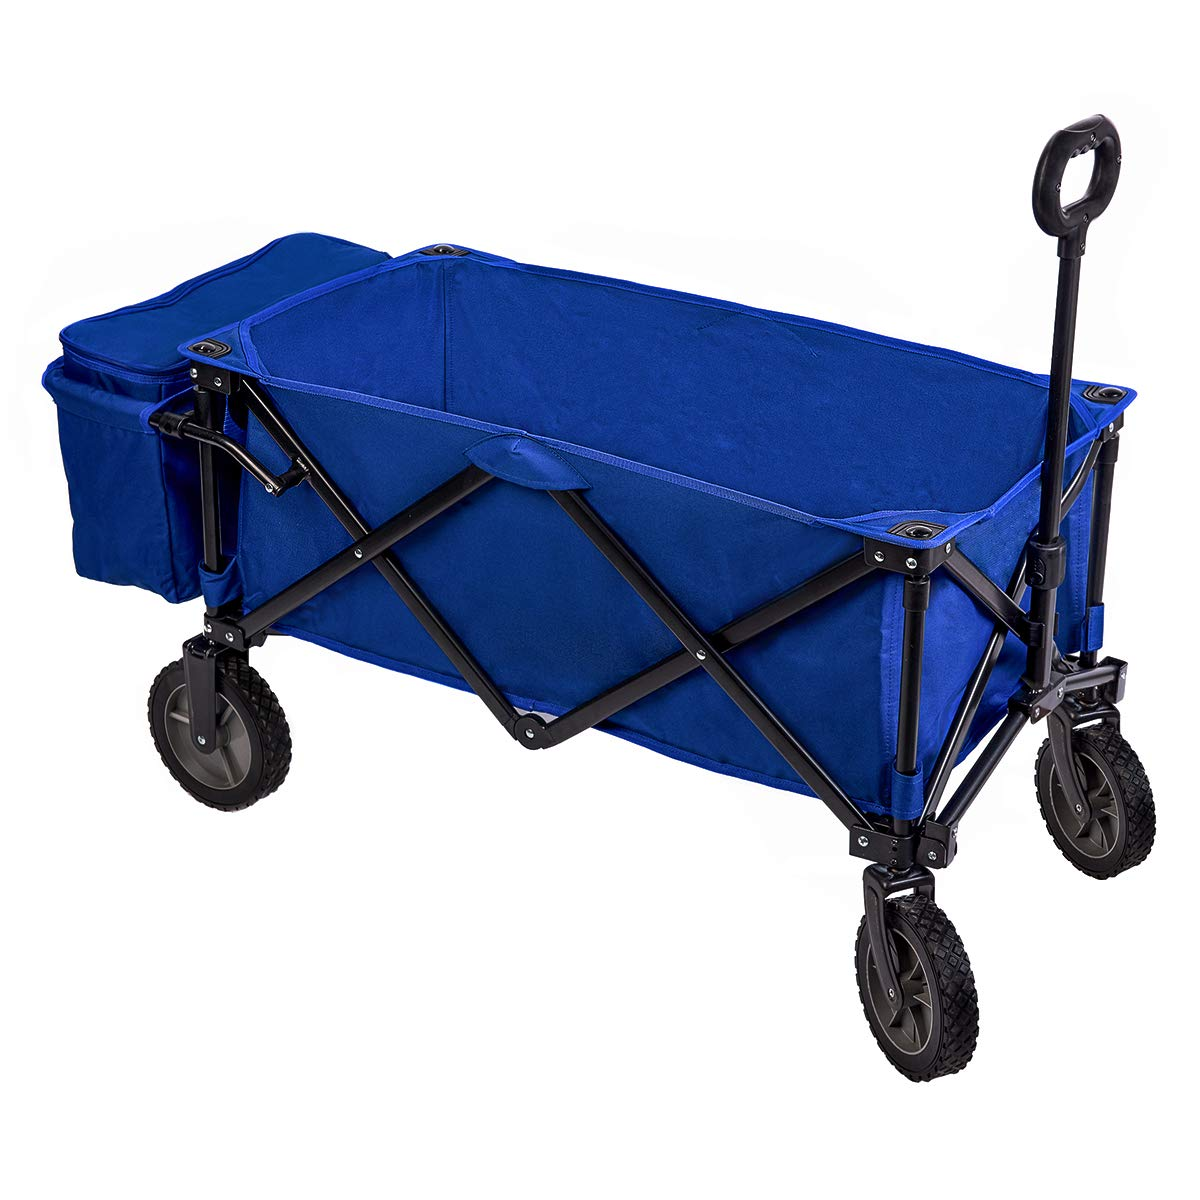 Timber Ridge Collapsible Beach Wagon Folding Camping Utility Cart Cooler Ice Bag Outdoor Supports up to 150lbs, Blue TRTR217271BECL